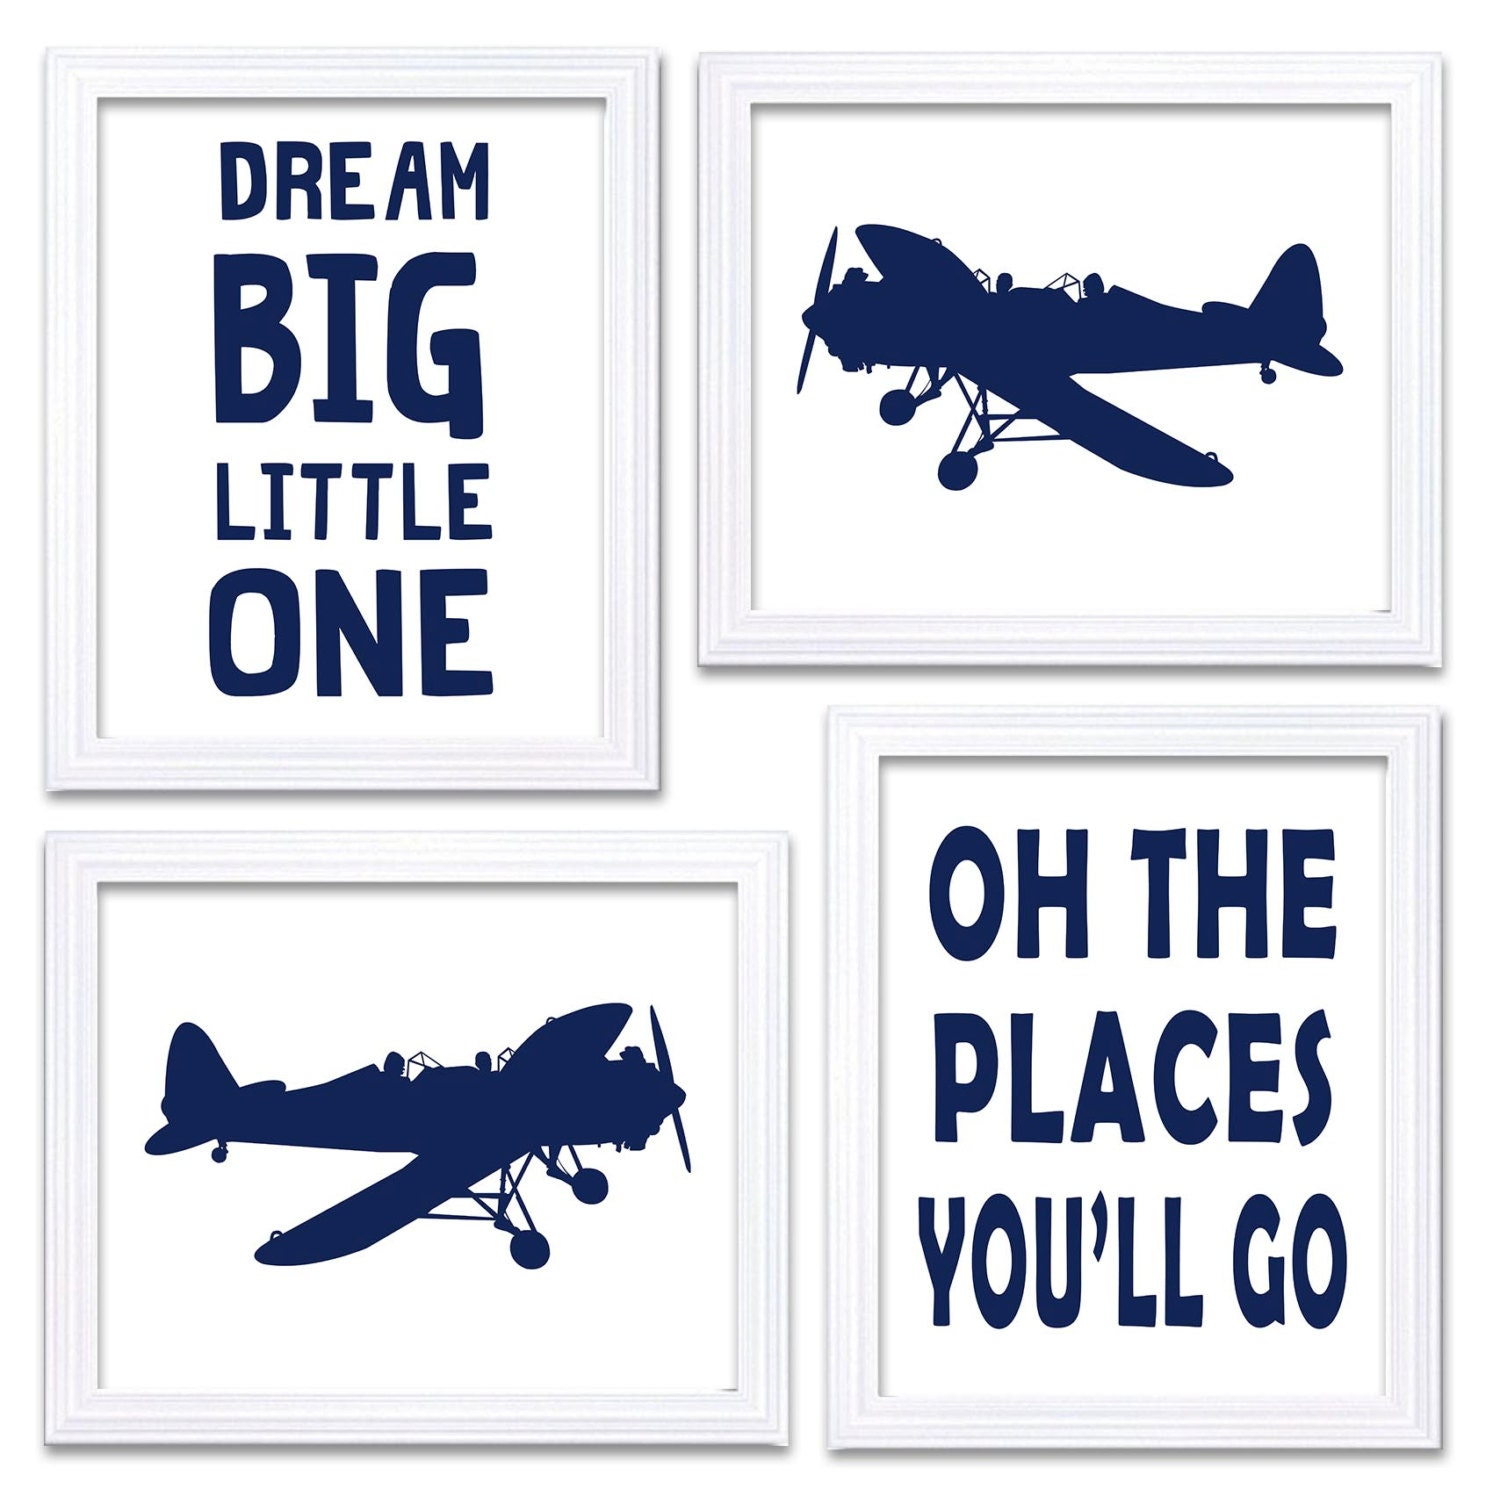 Airplane Nursery Art White Deep Navy Print Set of 4 Transportation Dream Big Little One Oh The Place